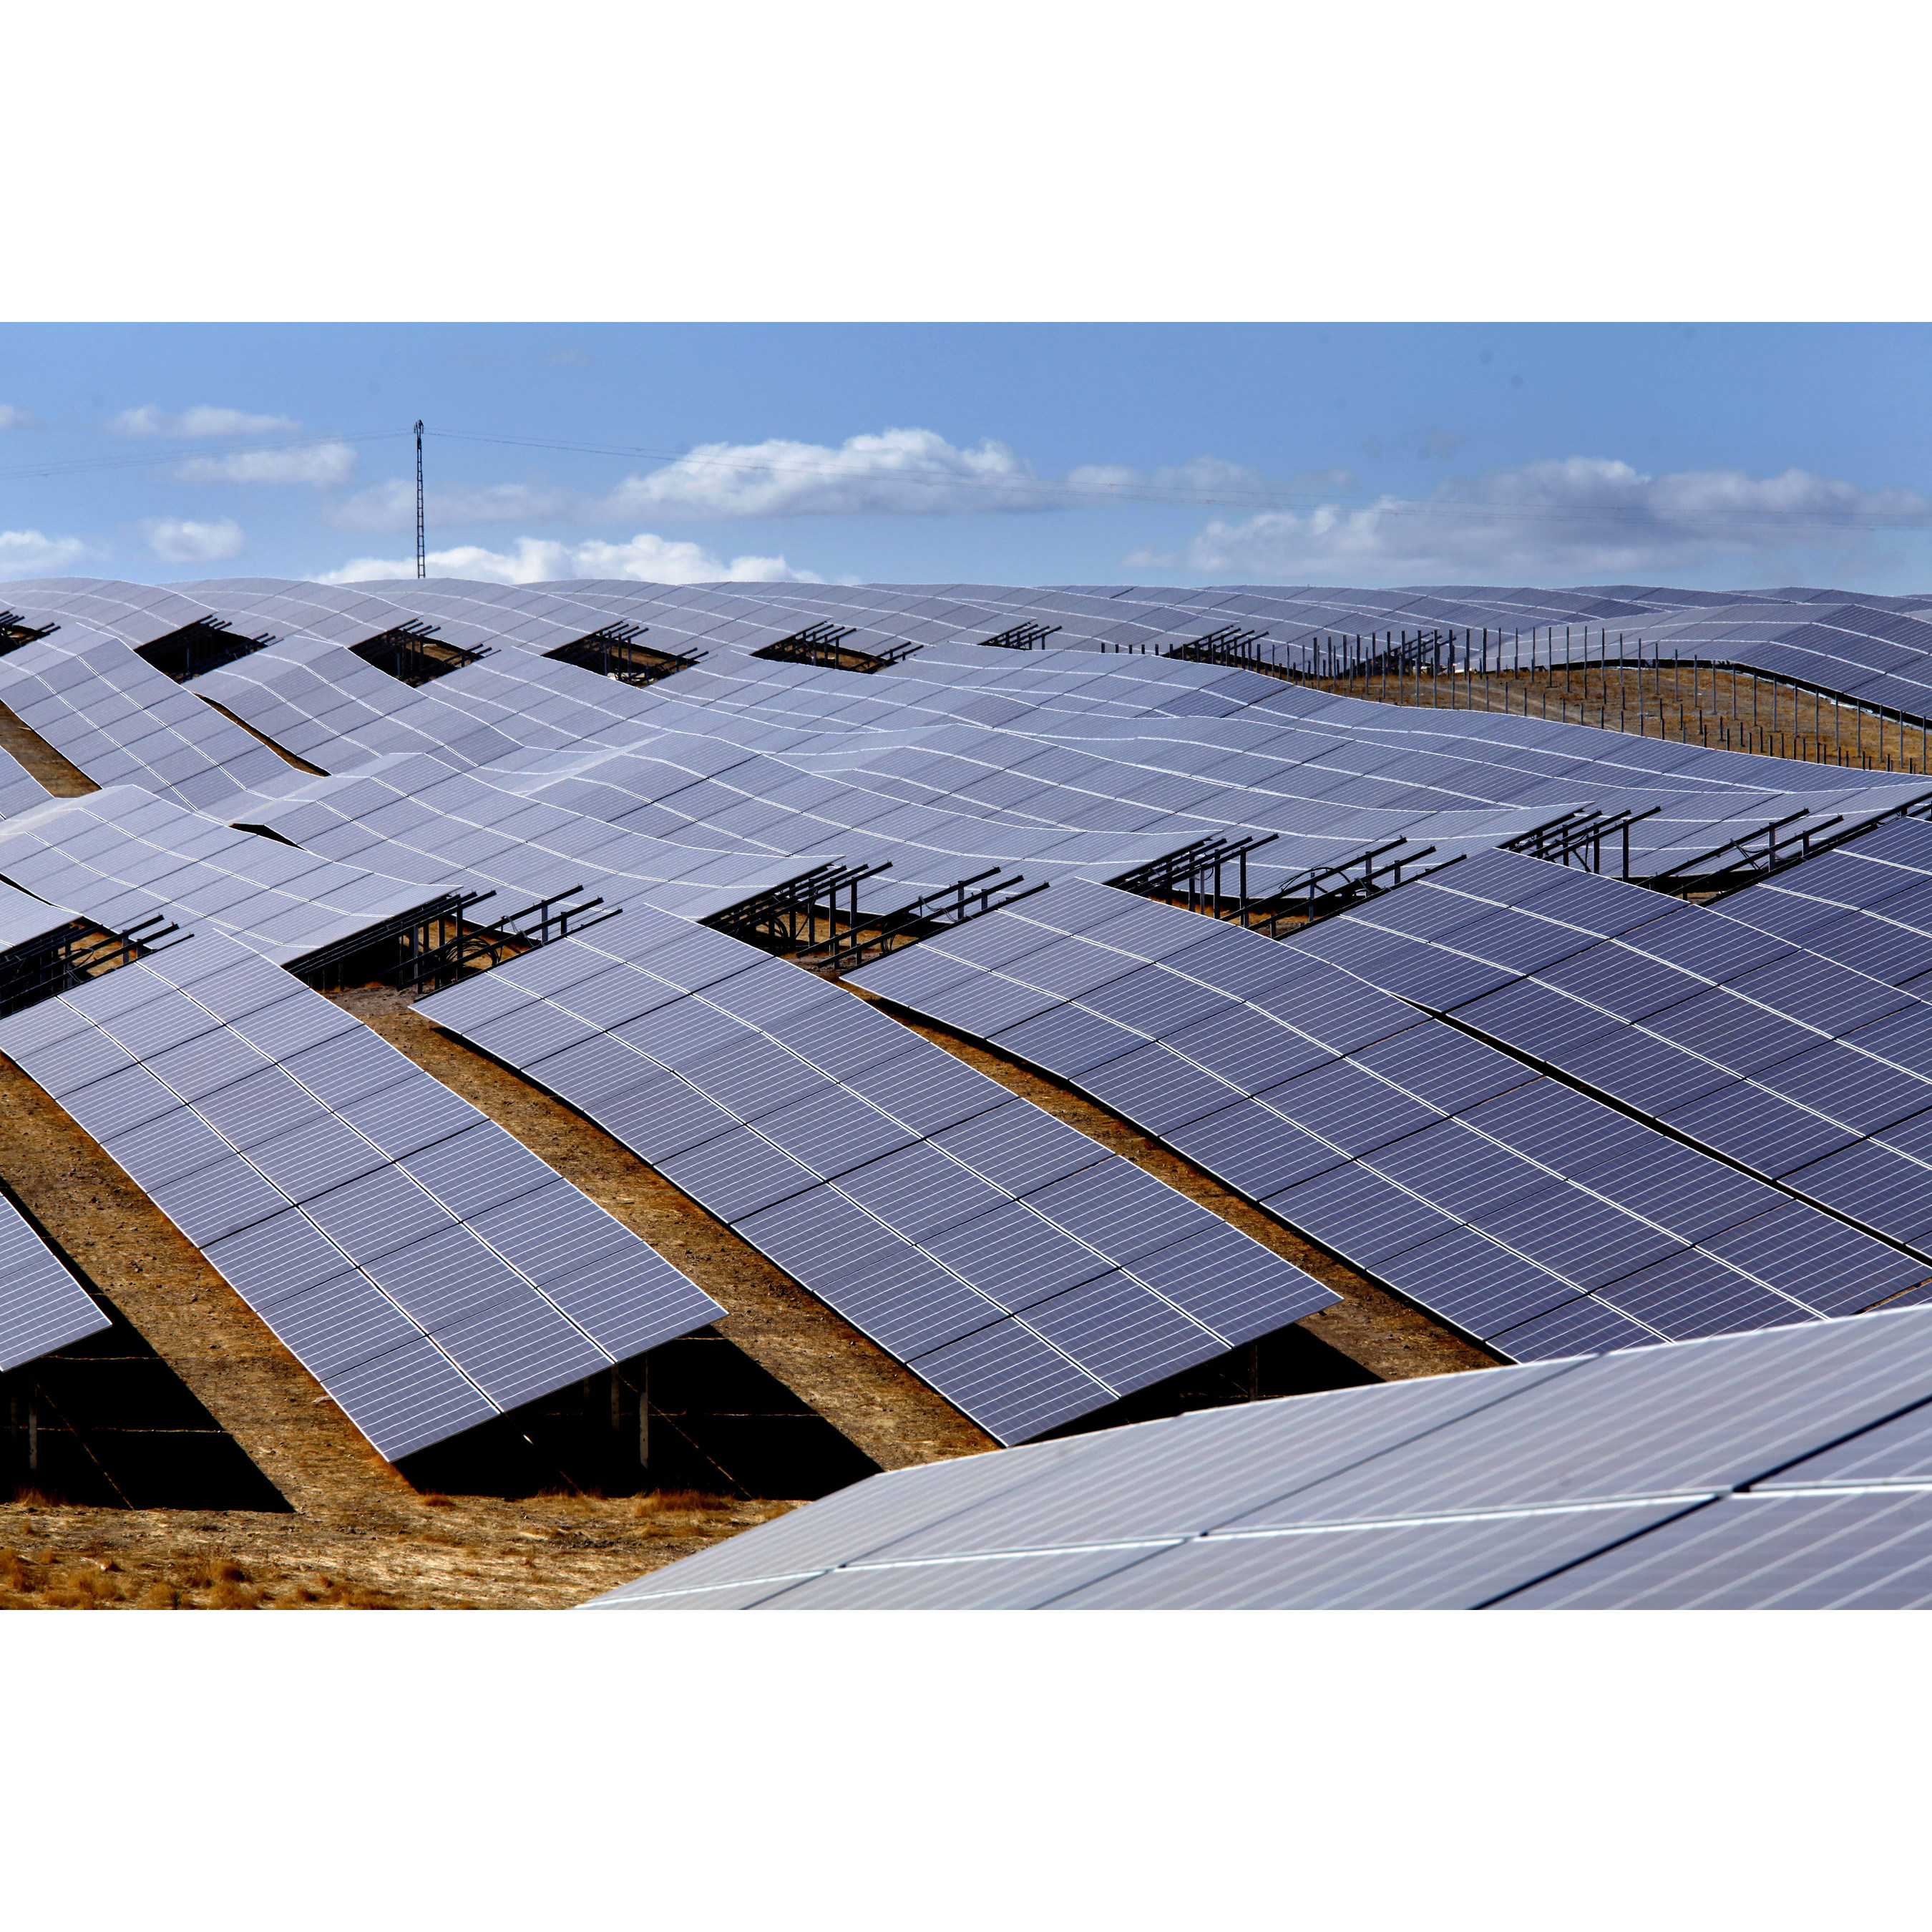 GCL-SI Supplies 150 MW Solar Modules for the Largest Solar Project in Europe